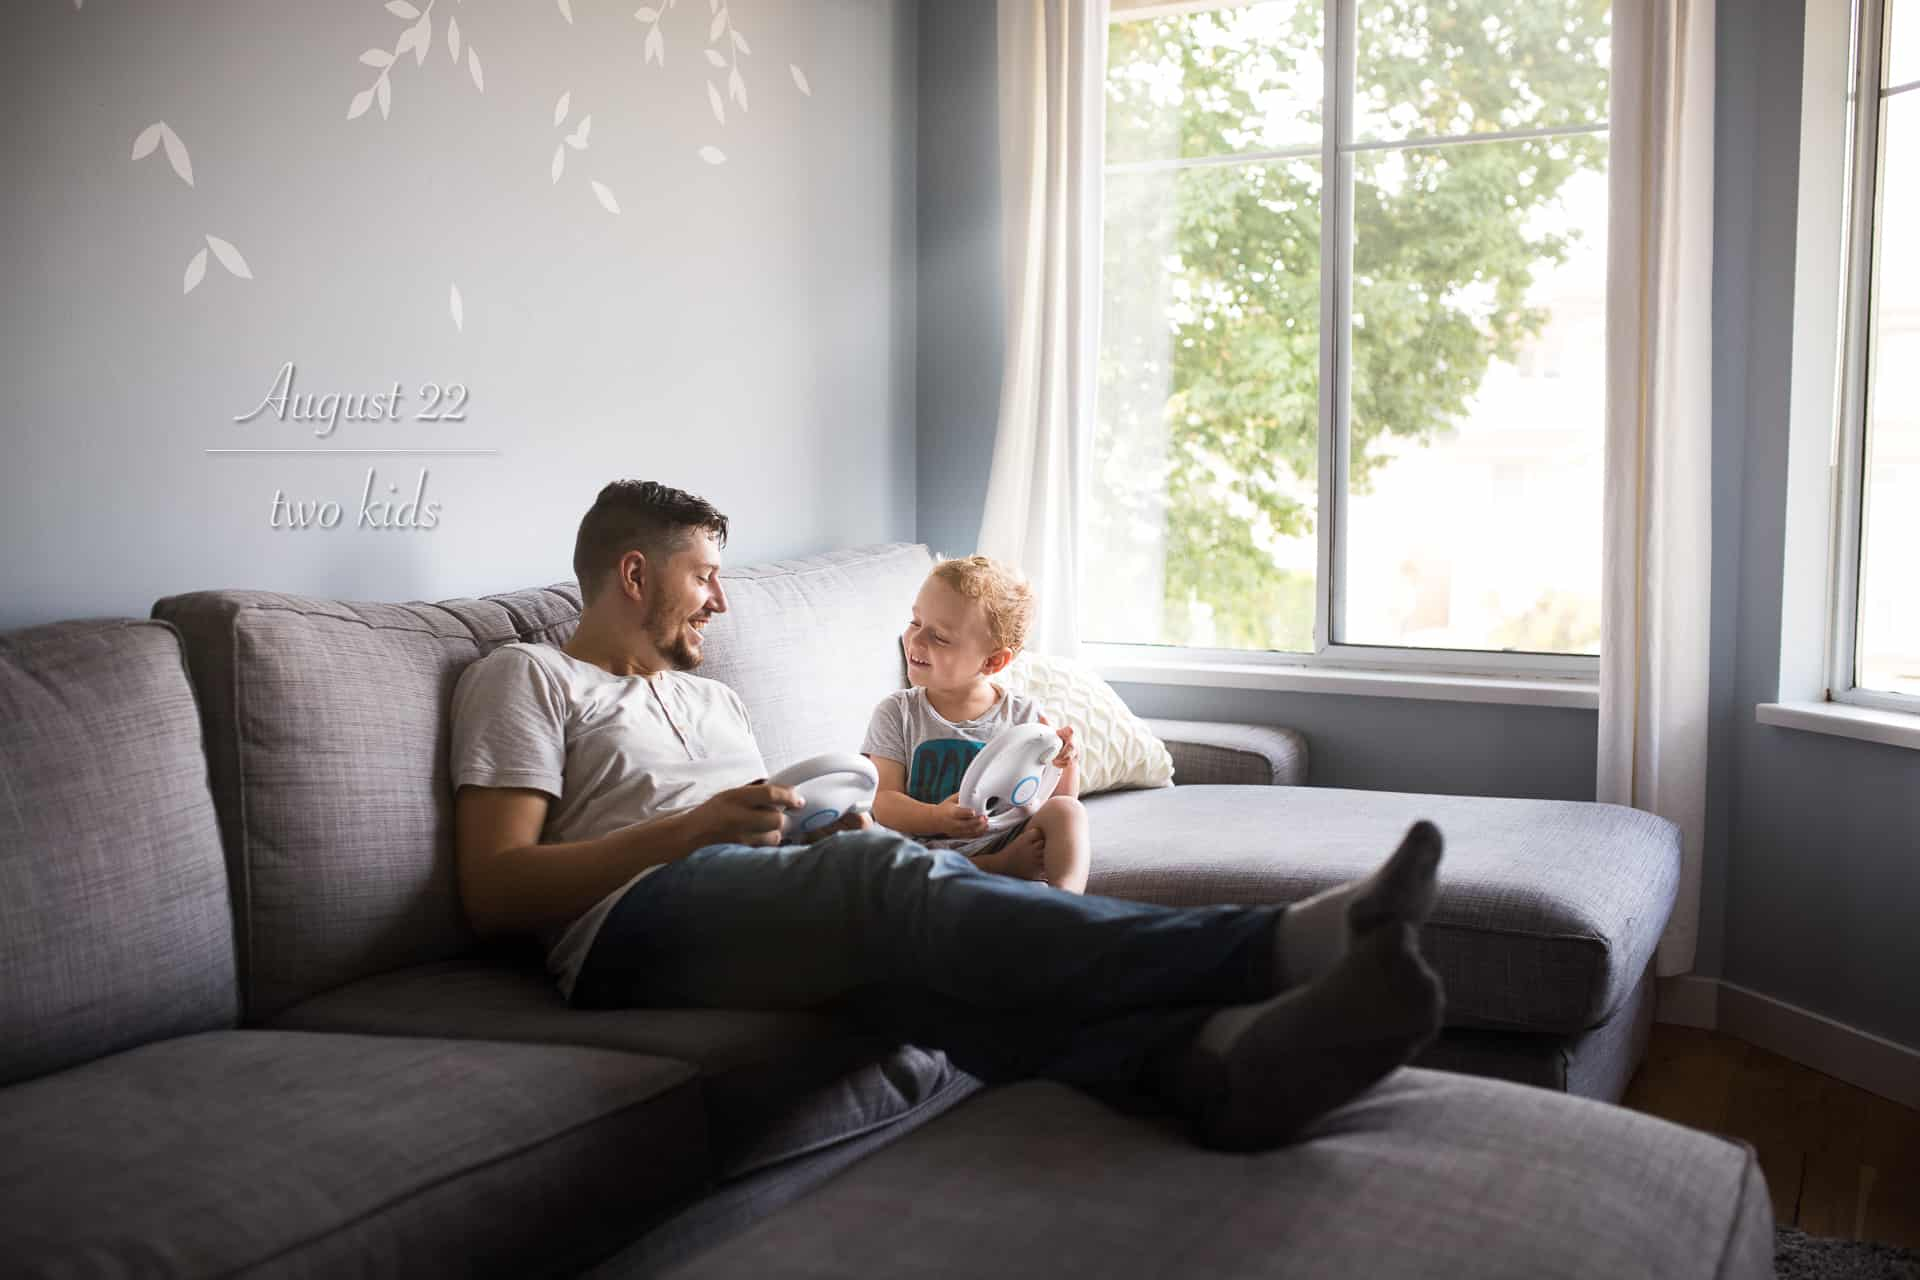 dad sitting on couch with toddler boy laughing and playing video games together